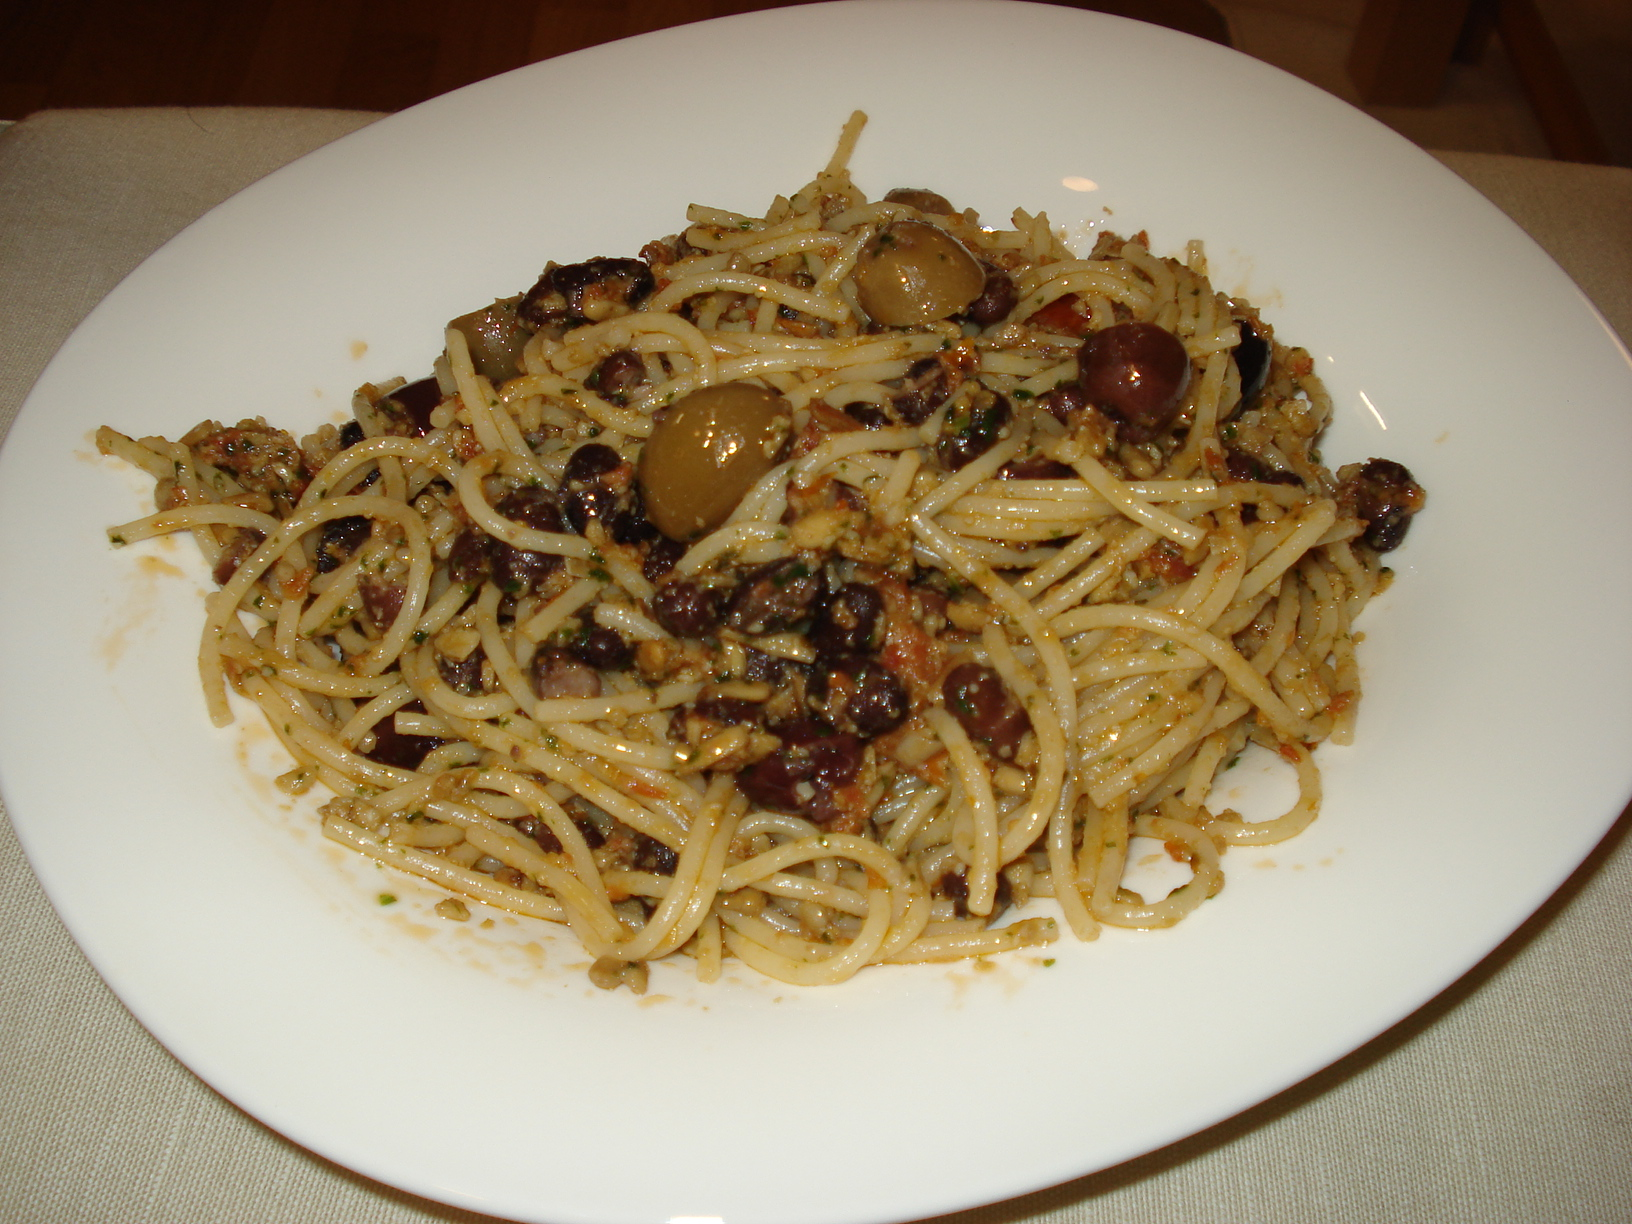 Spaghetti with red sunflower seed pesto, olives and black beans